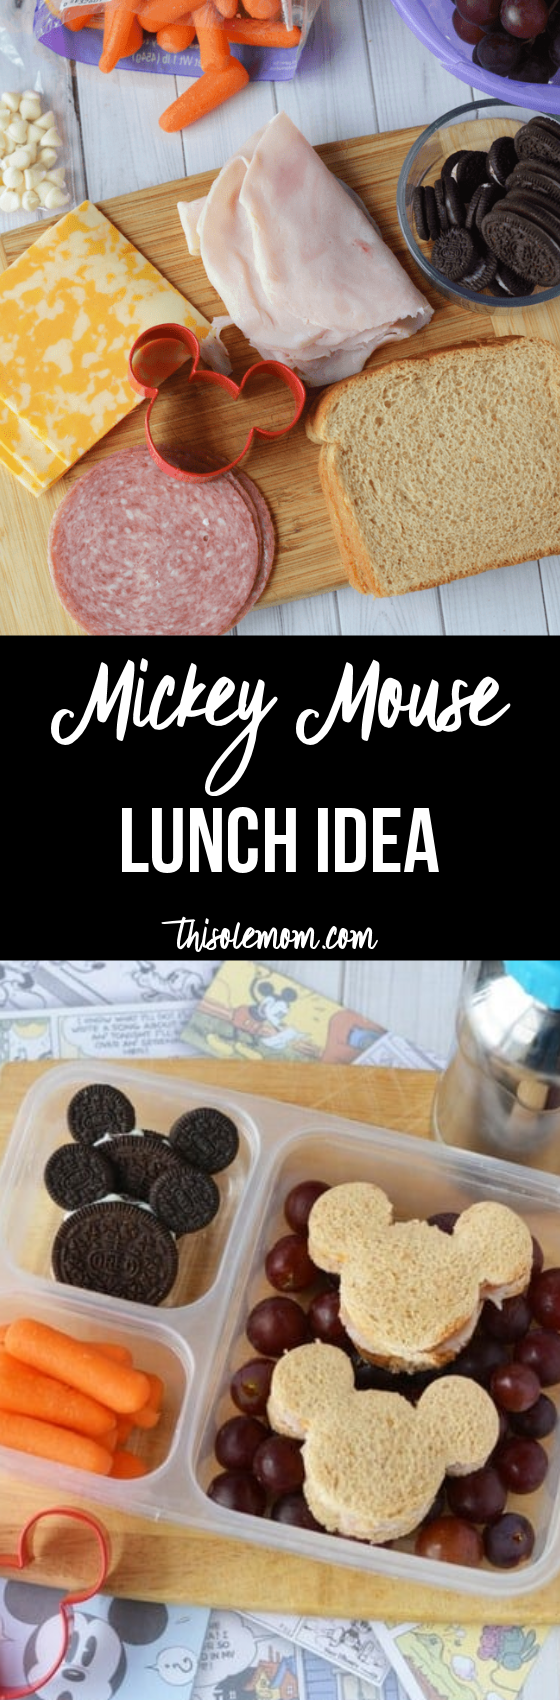 Mickey Mouse Lunch Idea